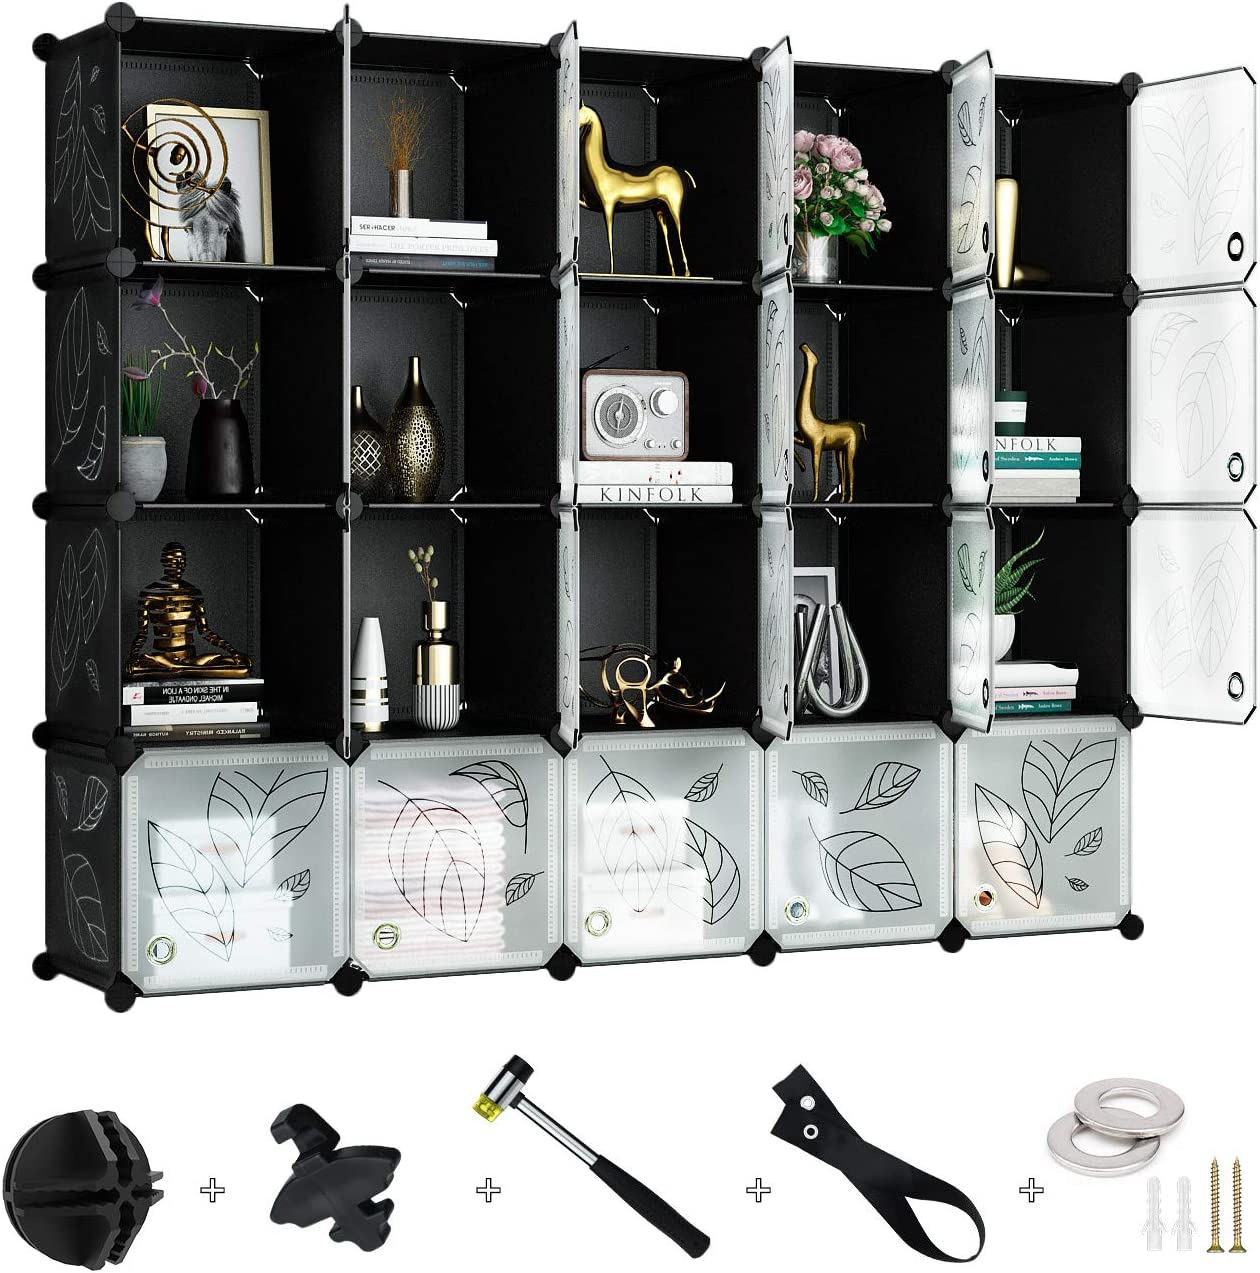 Black Clothes Greenstell 20 Cubes Storage Organizer NO Doors Artworks Toys DIY Plastic Stackable Shelves Multifunctional Modular Bookcase Closet Cabinet for Books Decorations